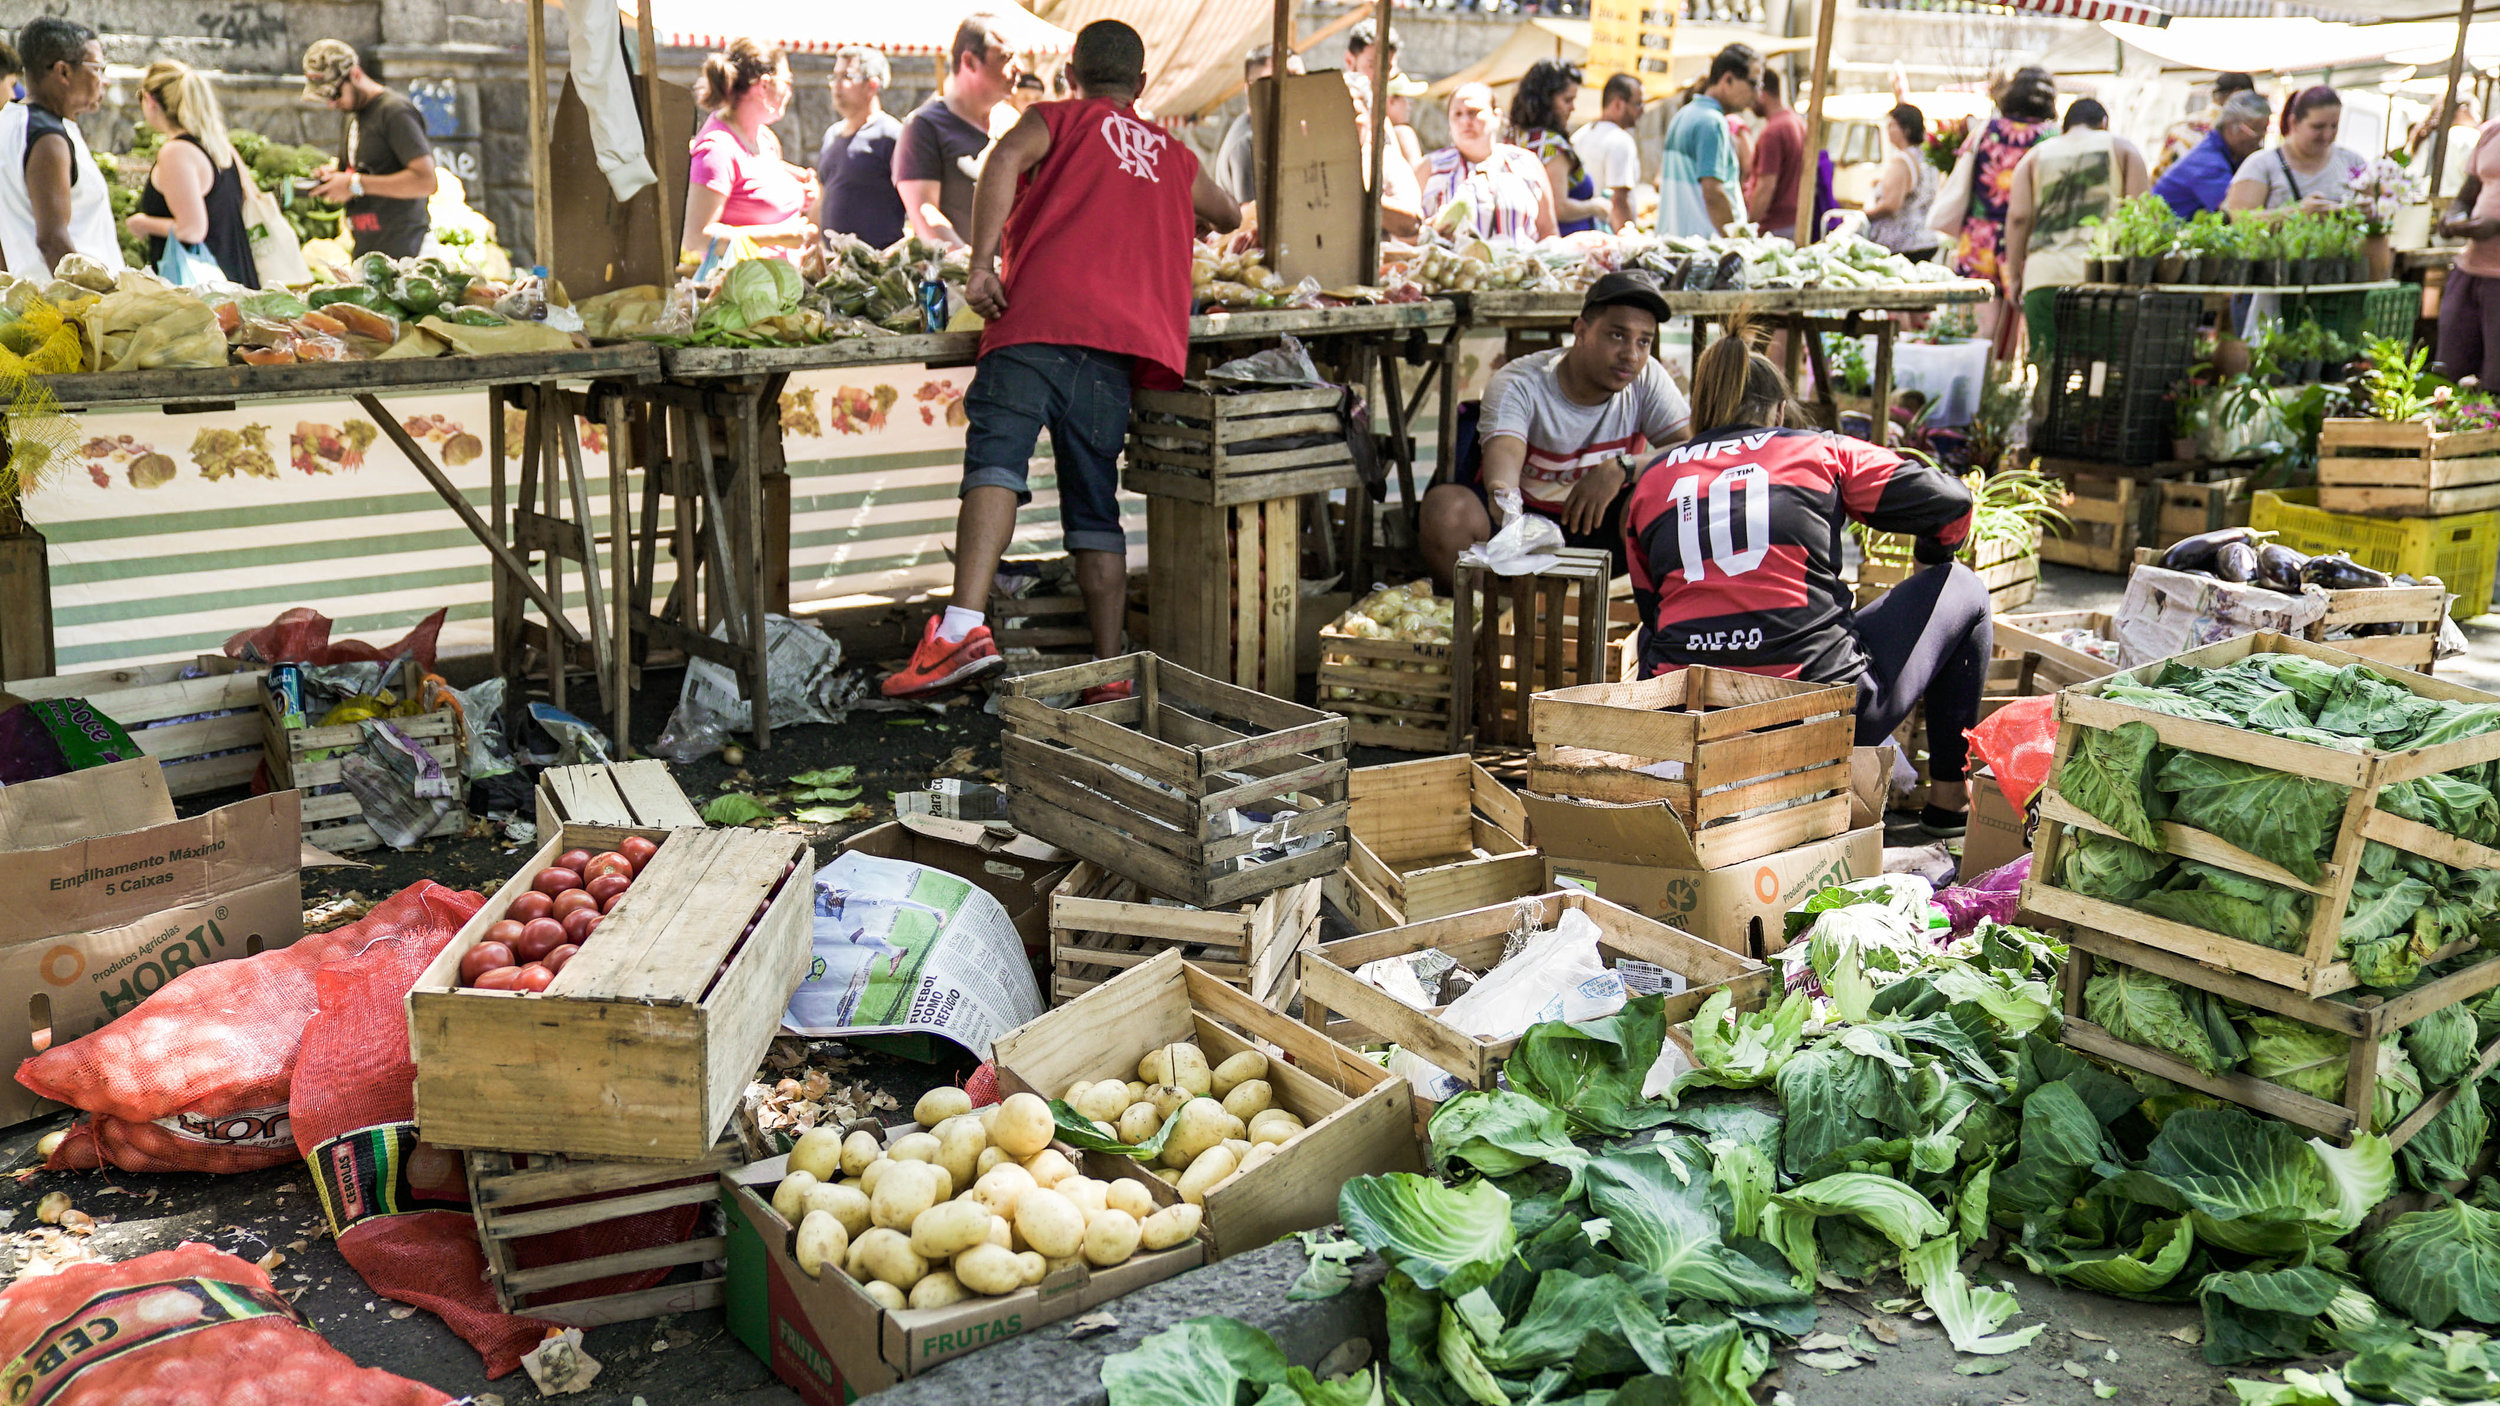 From waste to taste - Join Brazilians as they fight to end food waste by rescuing food that would have otherwise been thrown out and teaching future generations about the importance of food waste management.